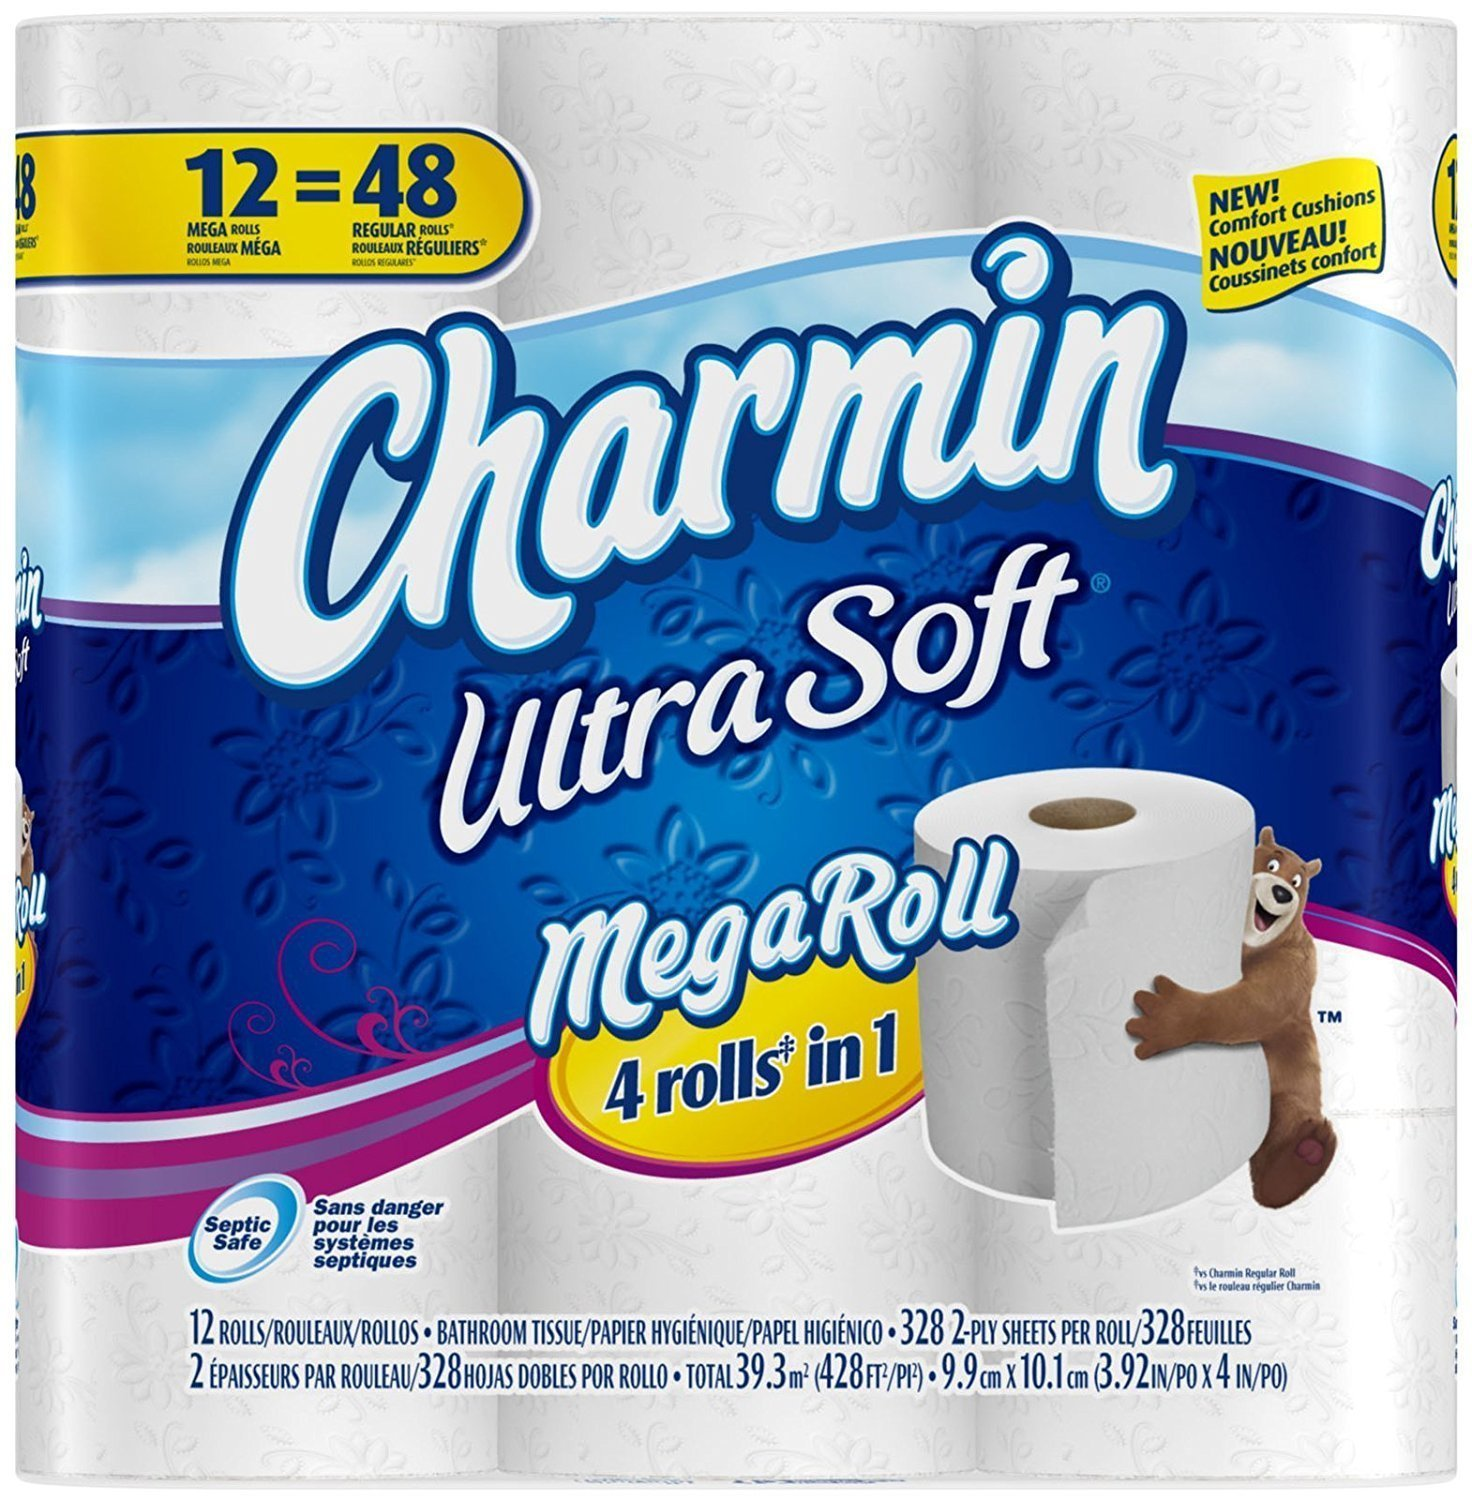 Amazon.com: Charmin Ultra Soft Toilet Paper 12 Mega Rolls=48 Regular Rolls: Health & Personal Care